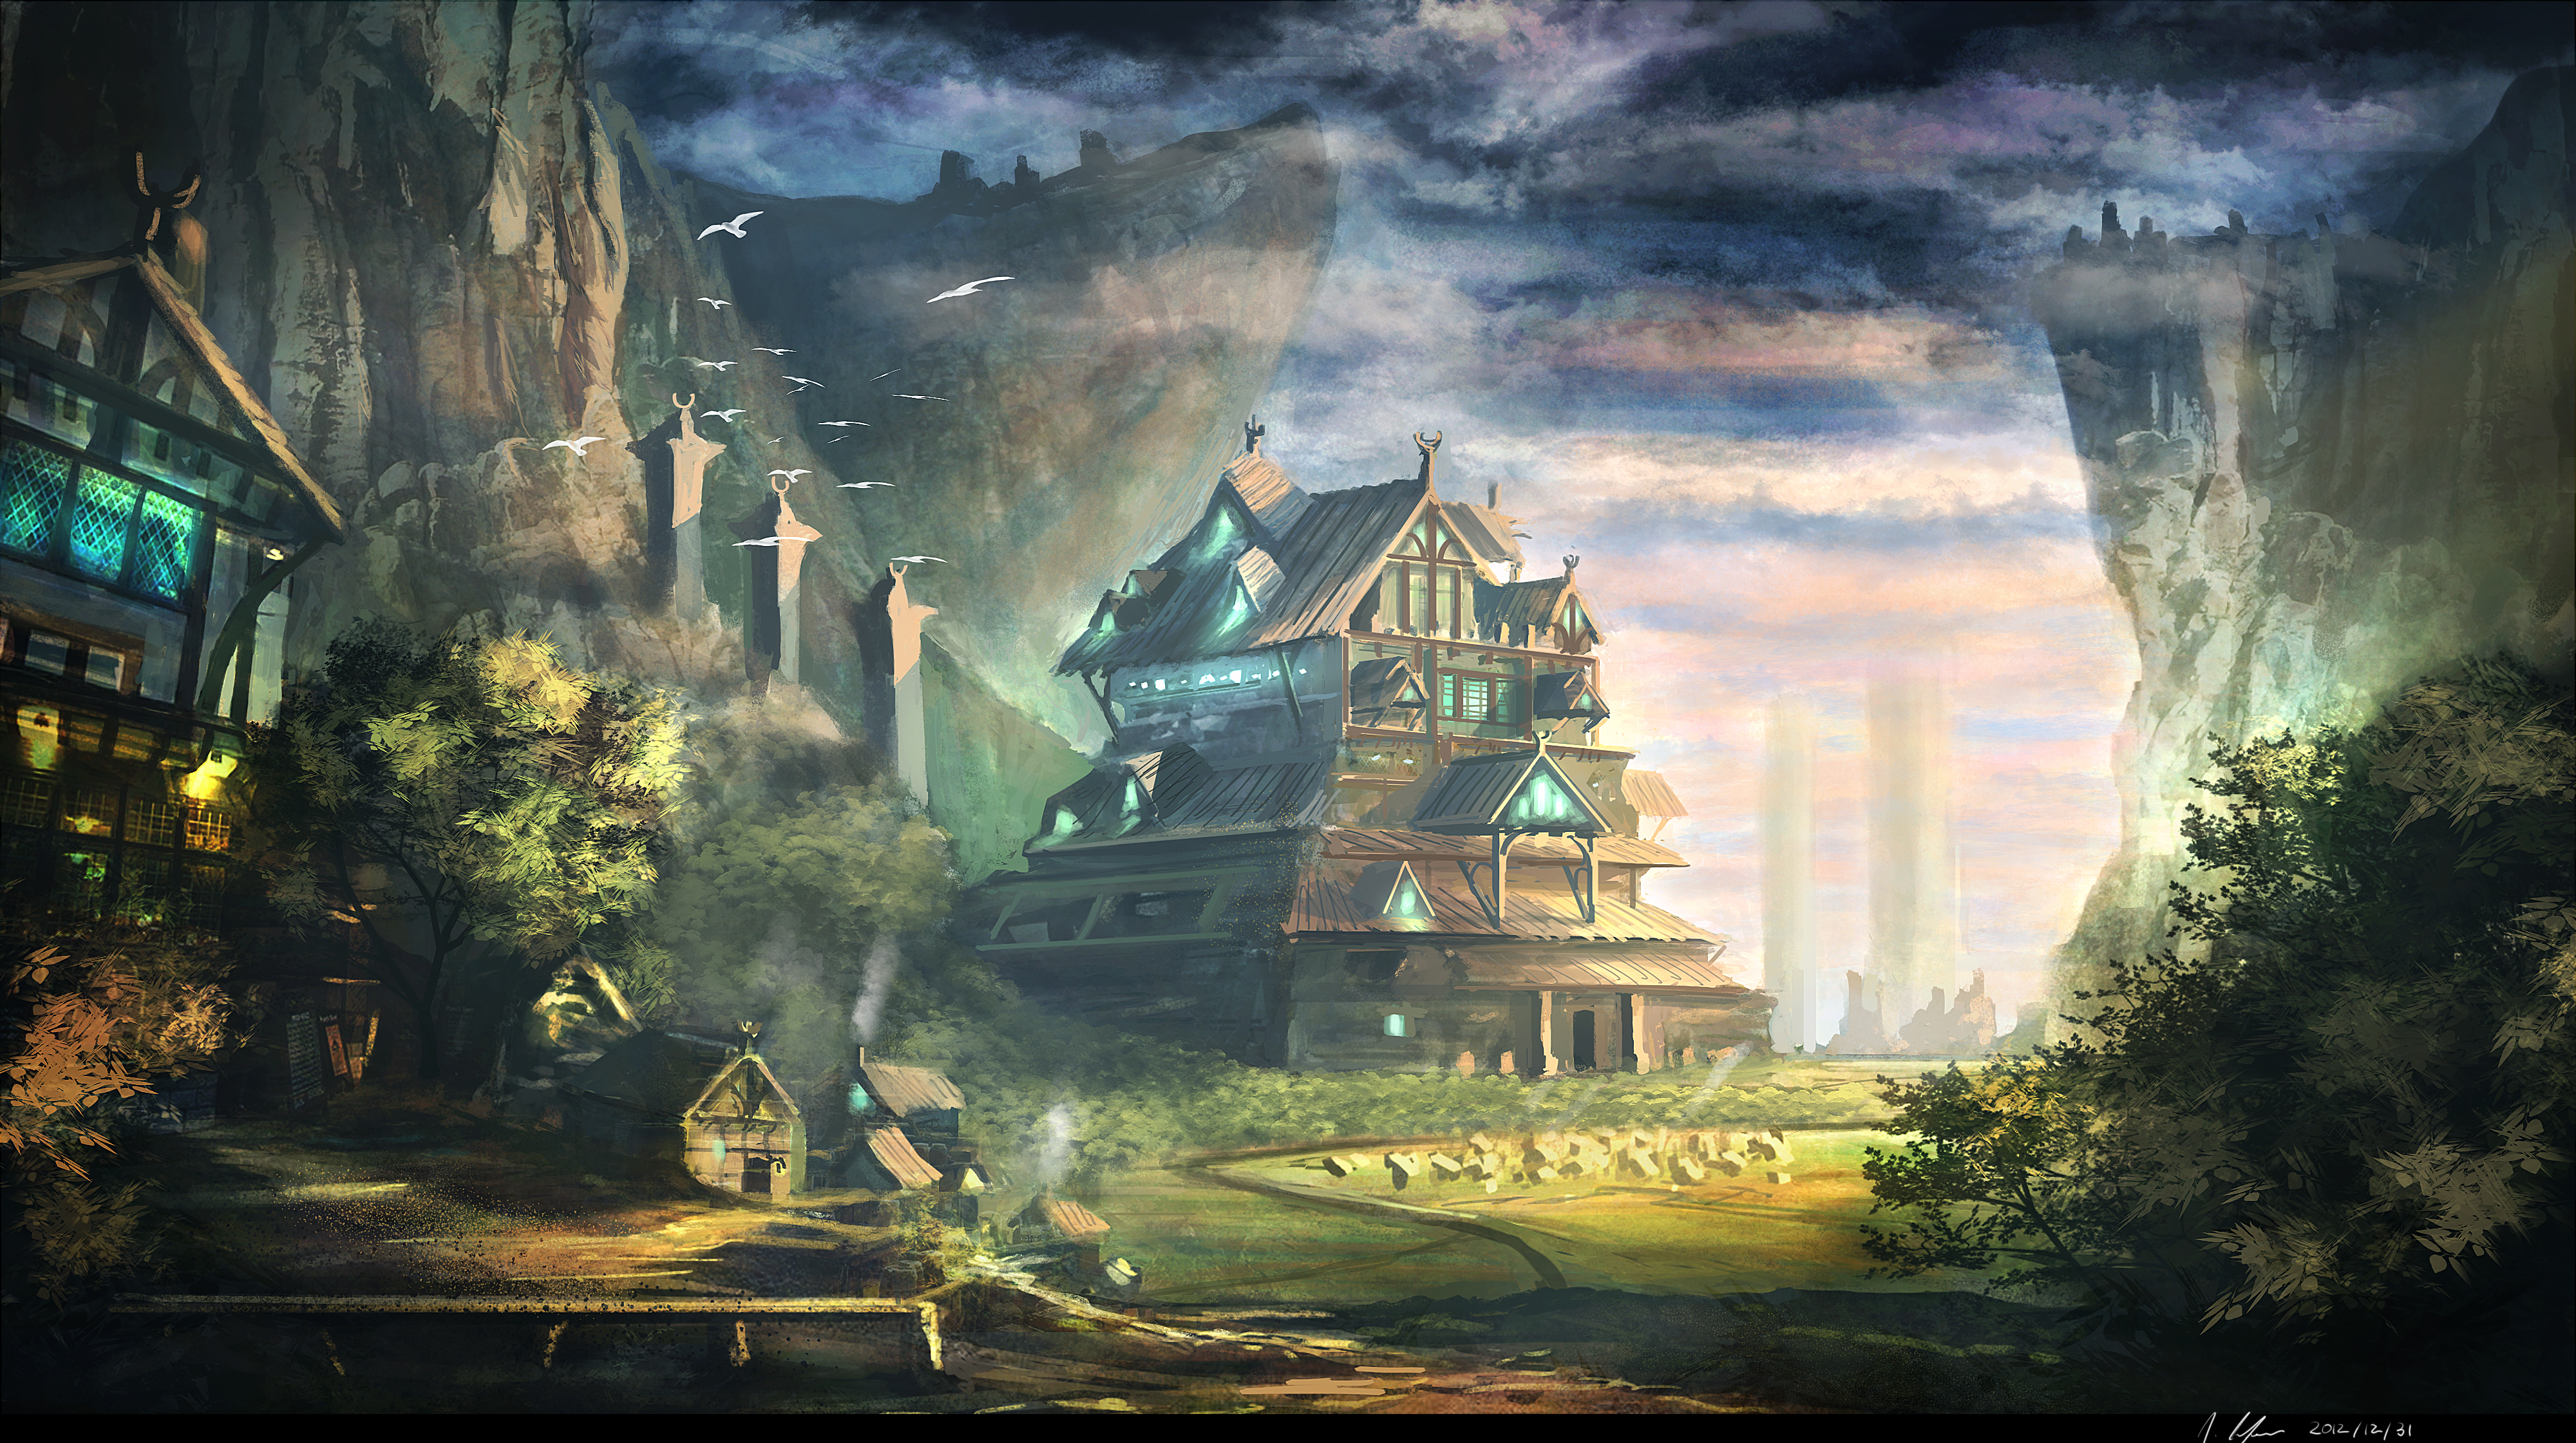 Best Fantasy Architecture Hd Wallpaper: Painting Art Wallpapers [Wallpaper Wednesday]